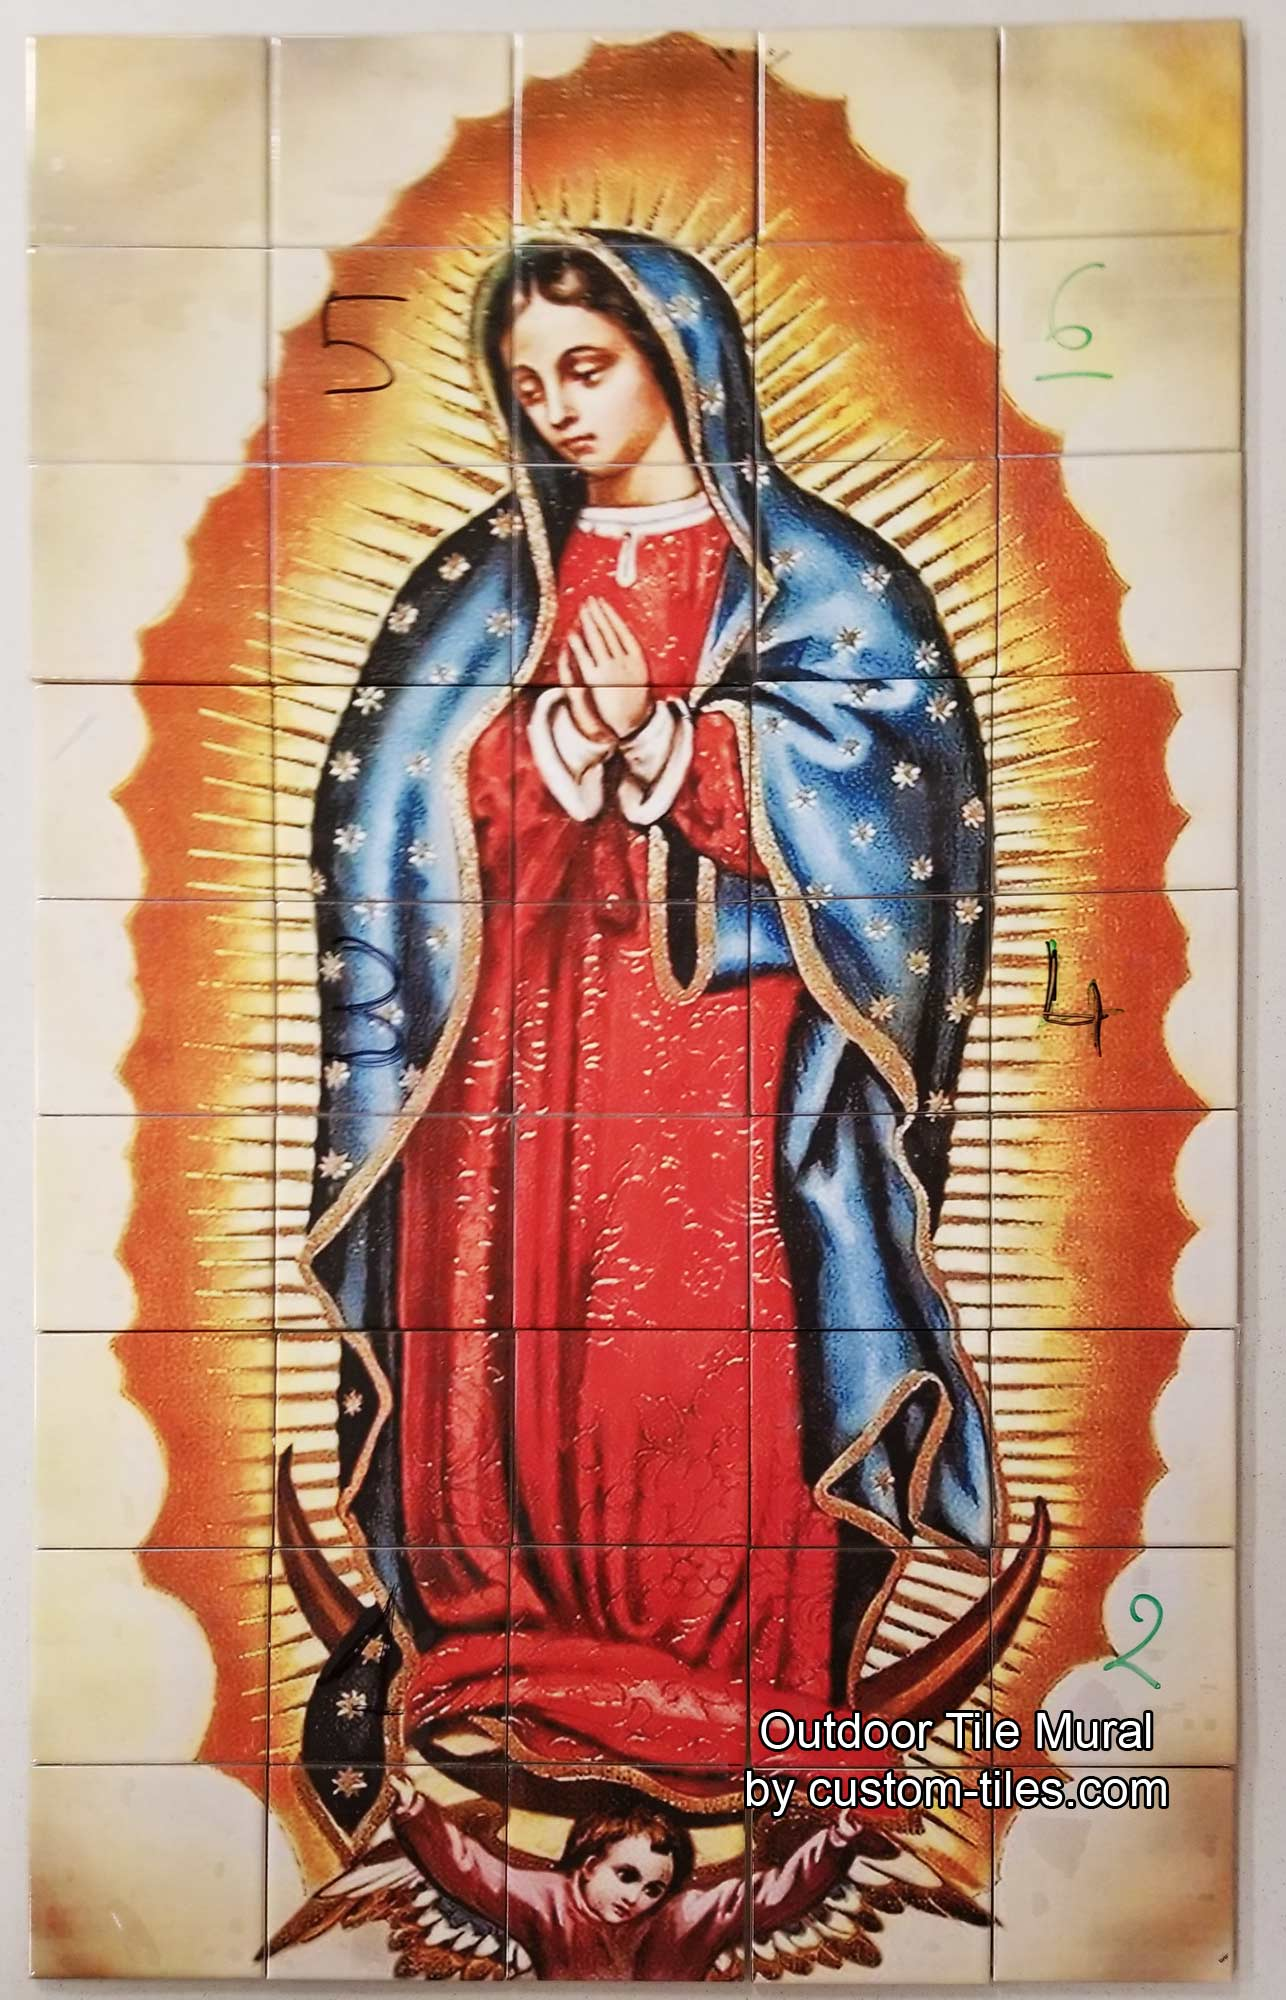 The Virgin, Our Lady of Guadalupe, Outdoor Tile Mural